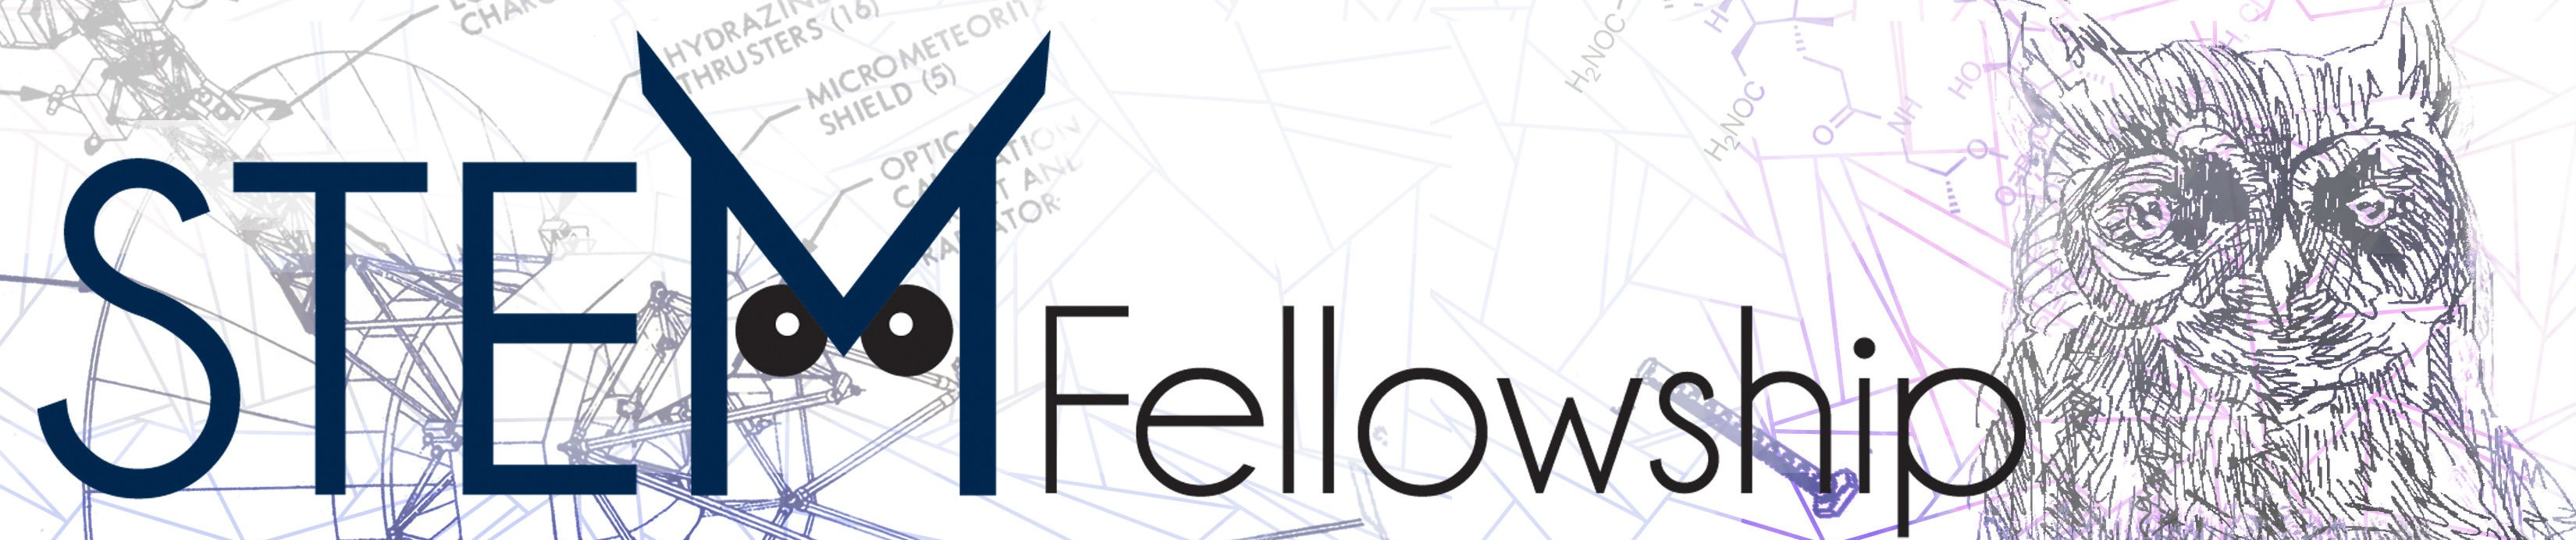 STEM Fellowship - Student Research and Innovation Network | LinkedIn